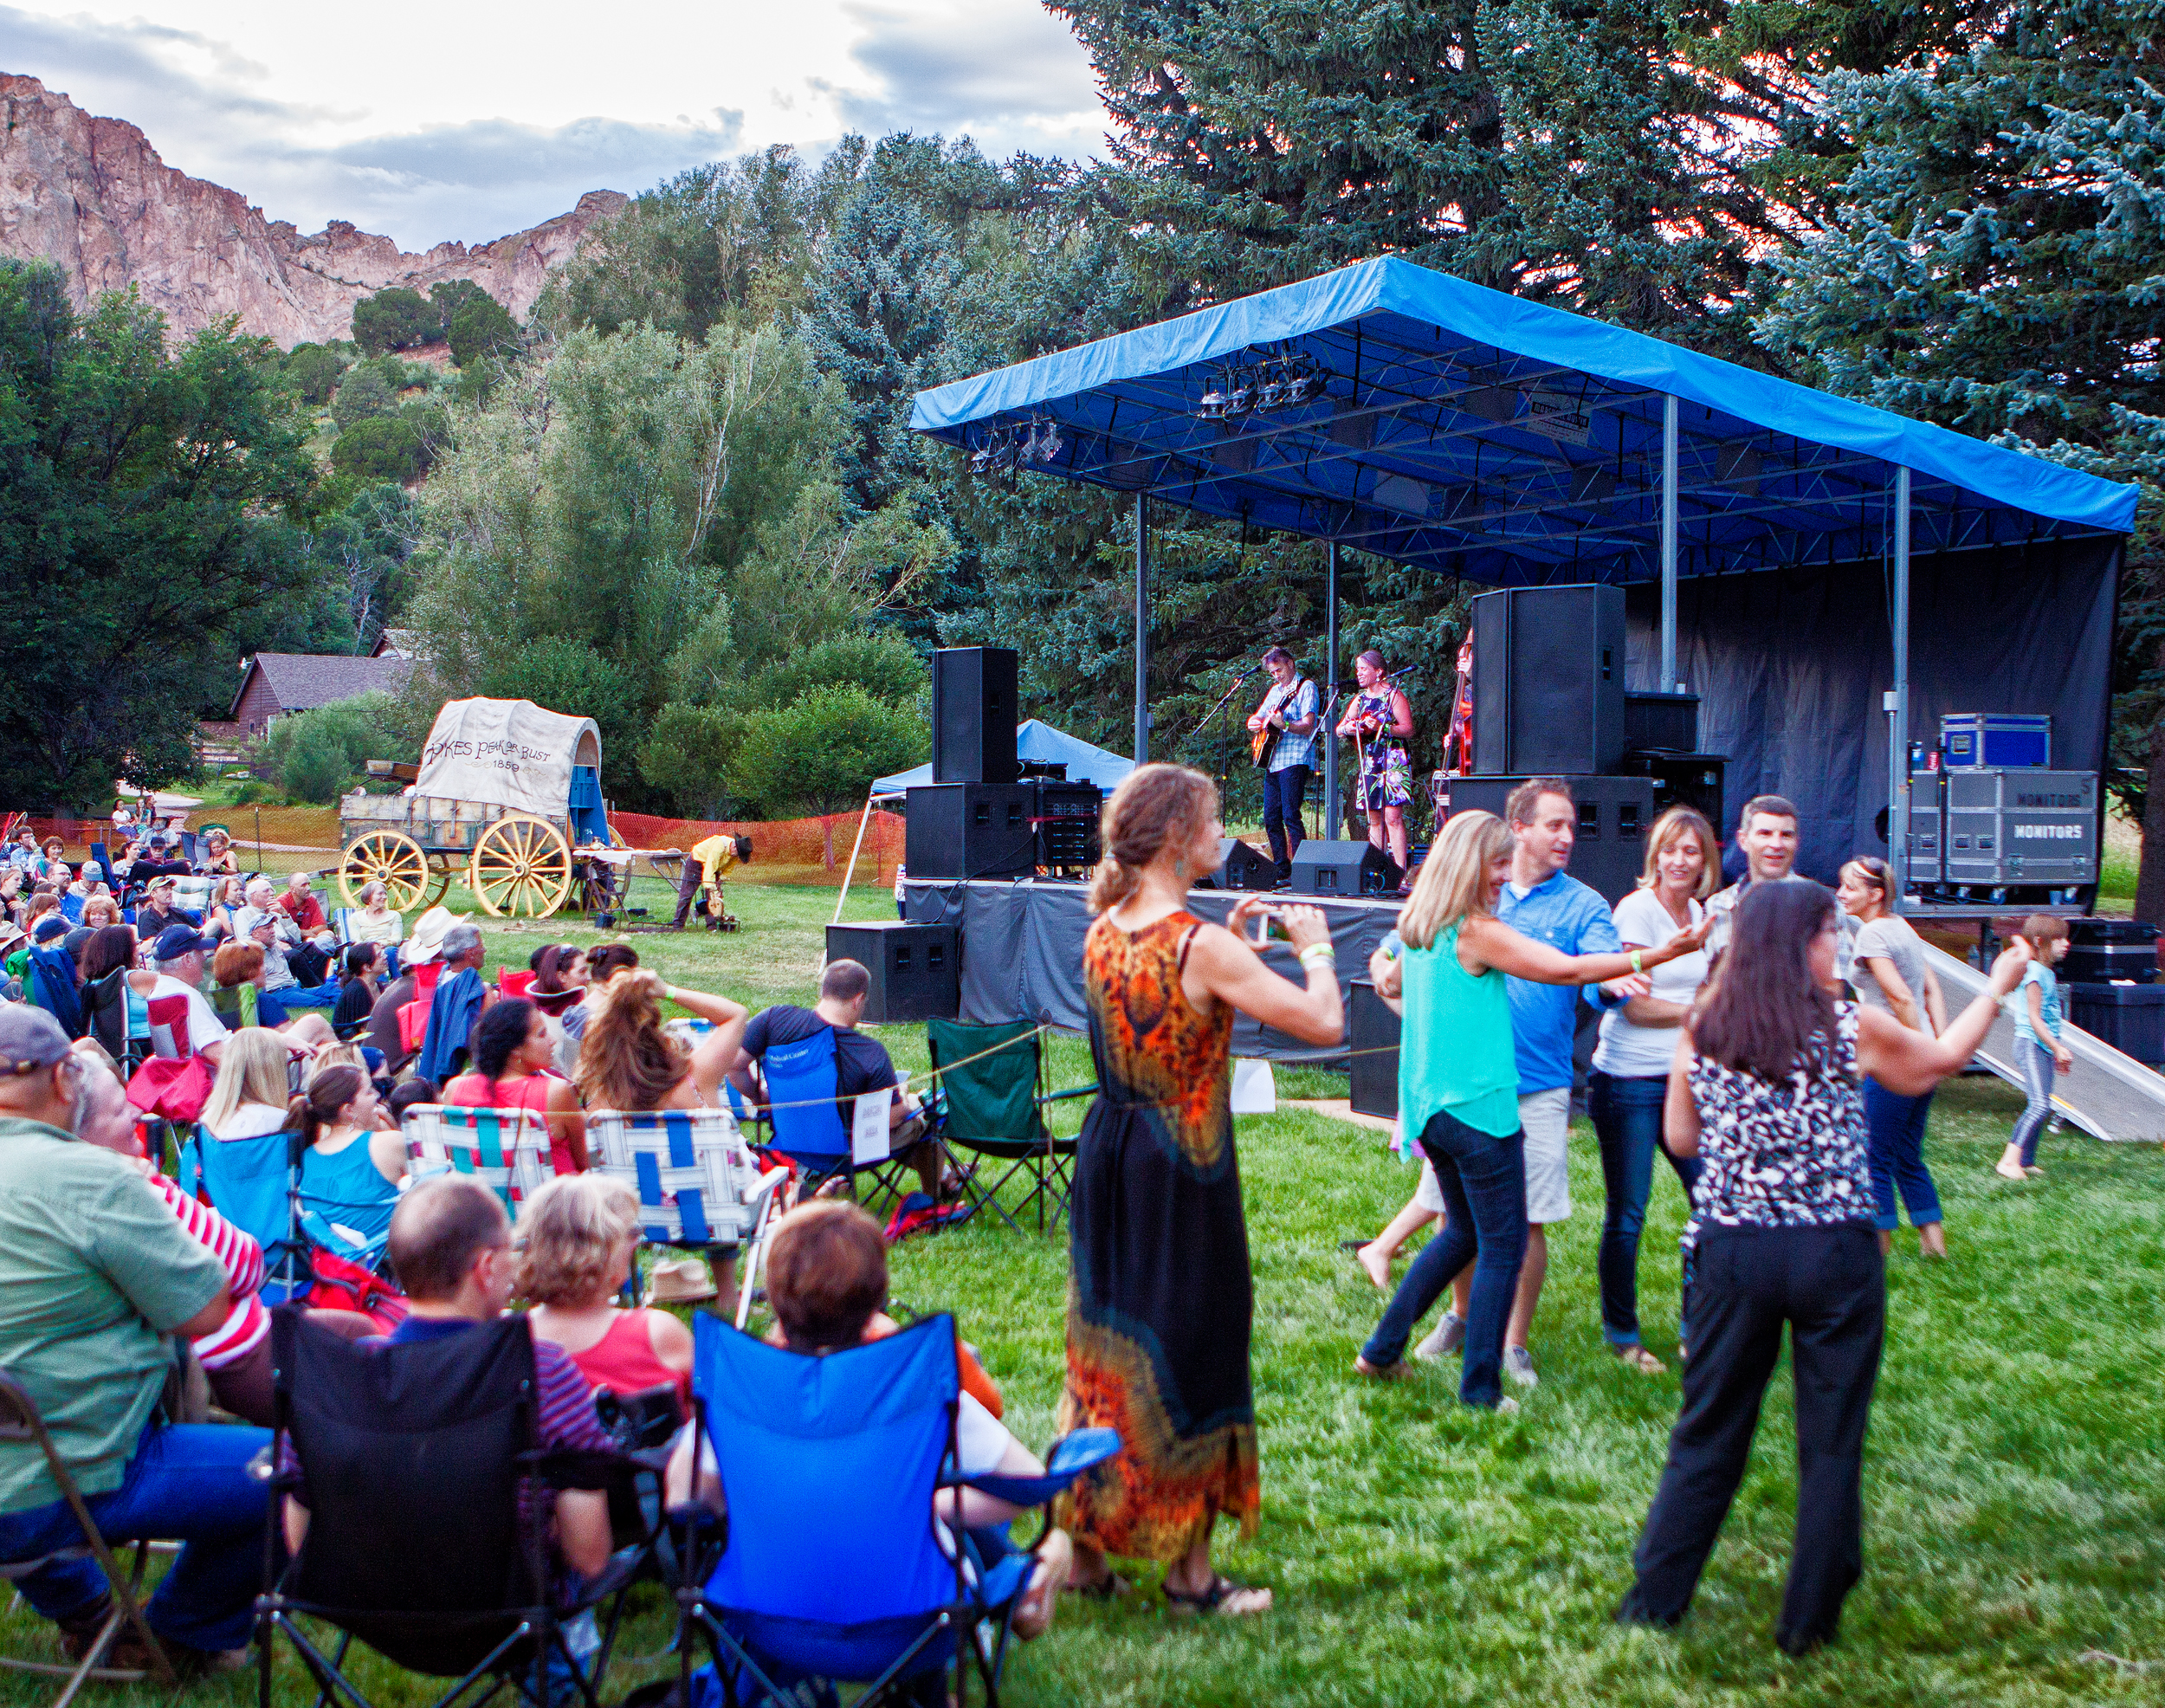 People celebrating at a festival at Rock Ledge Ranch